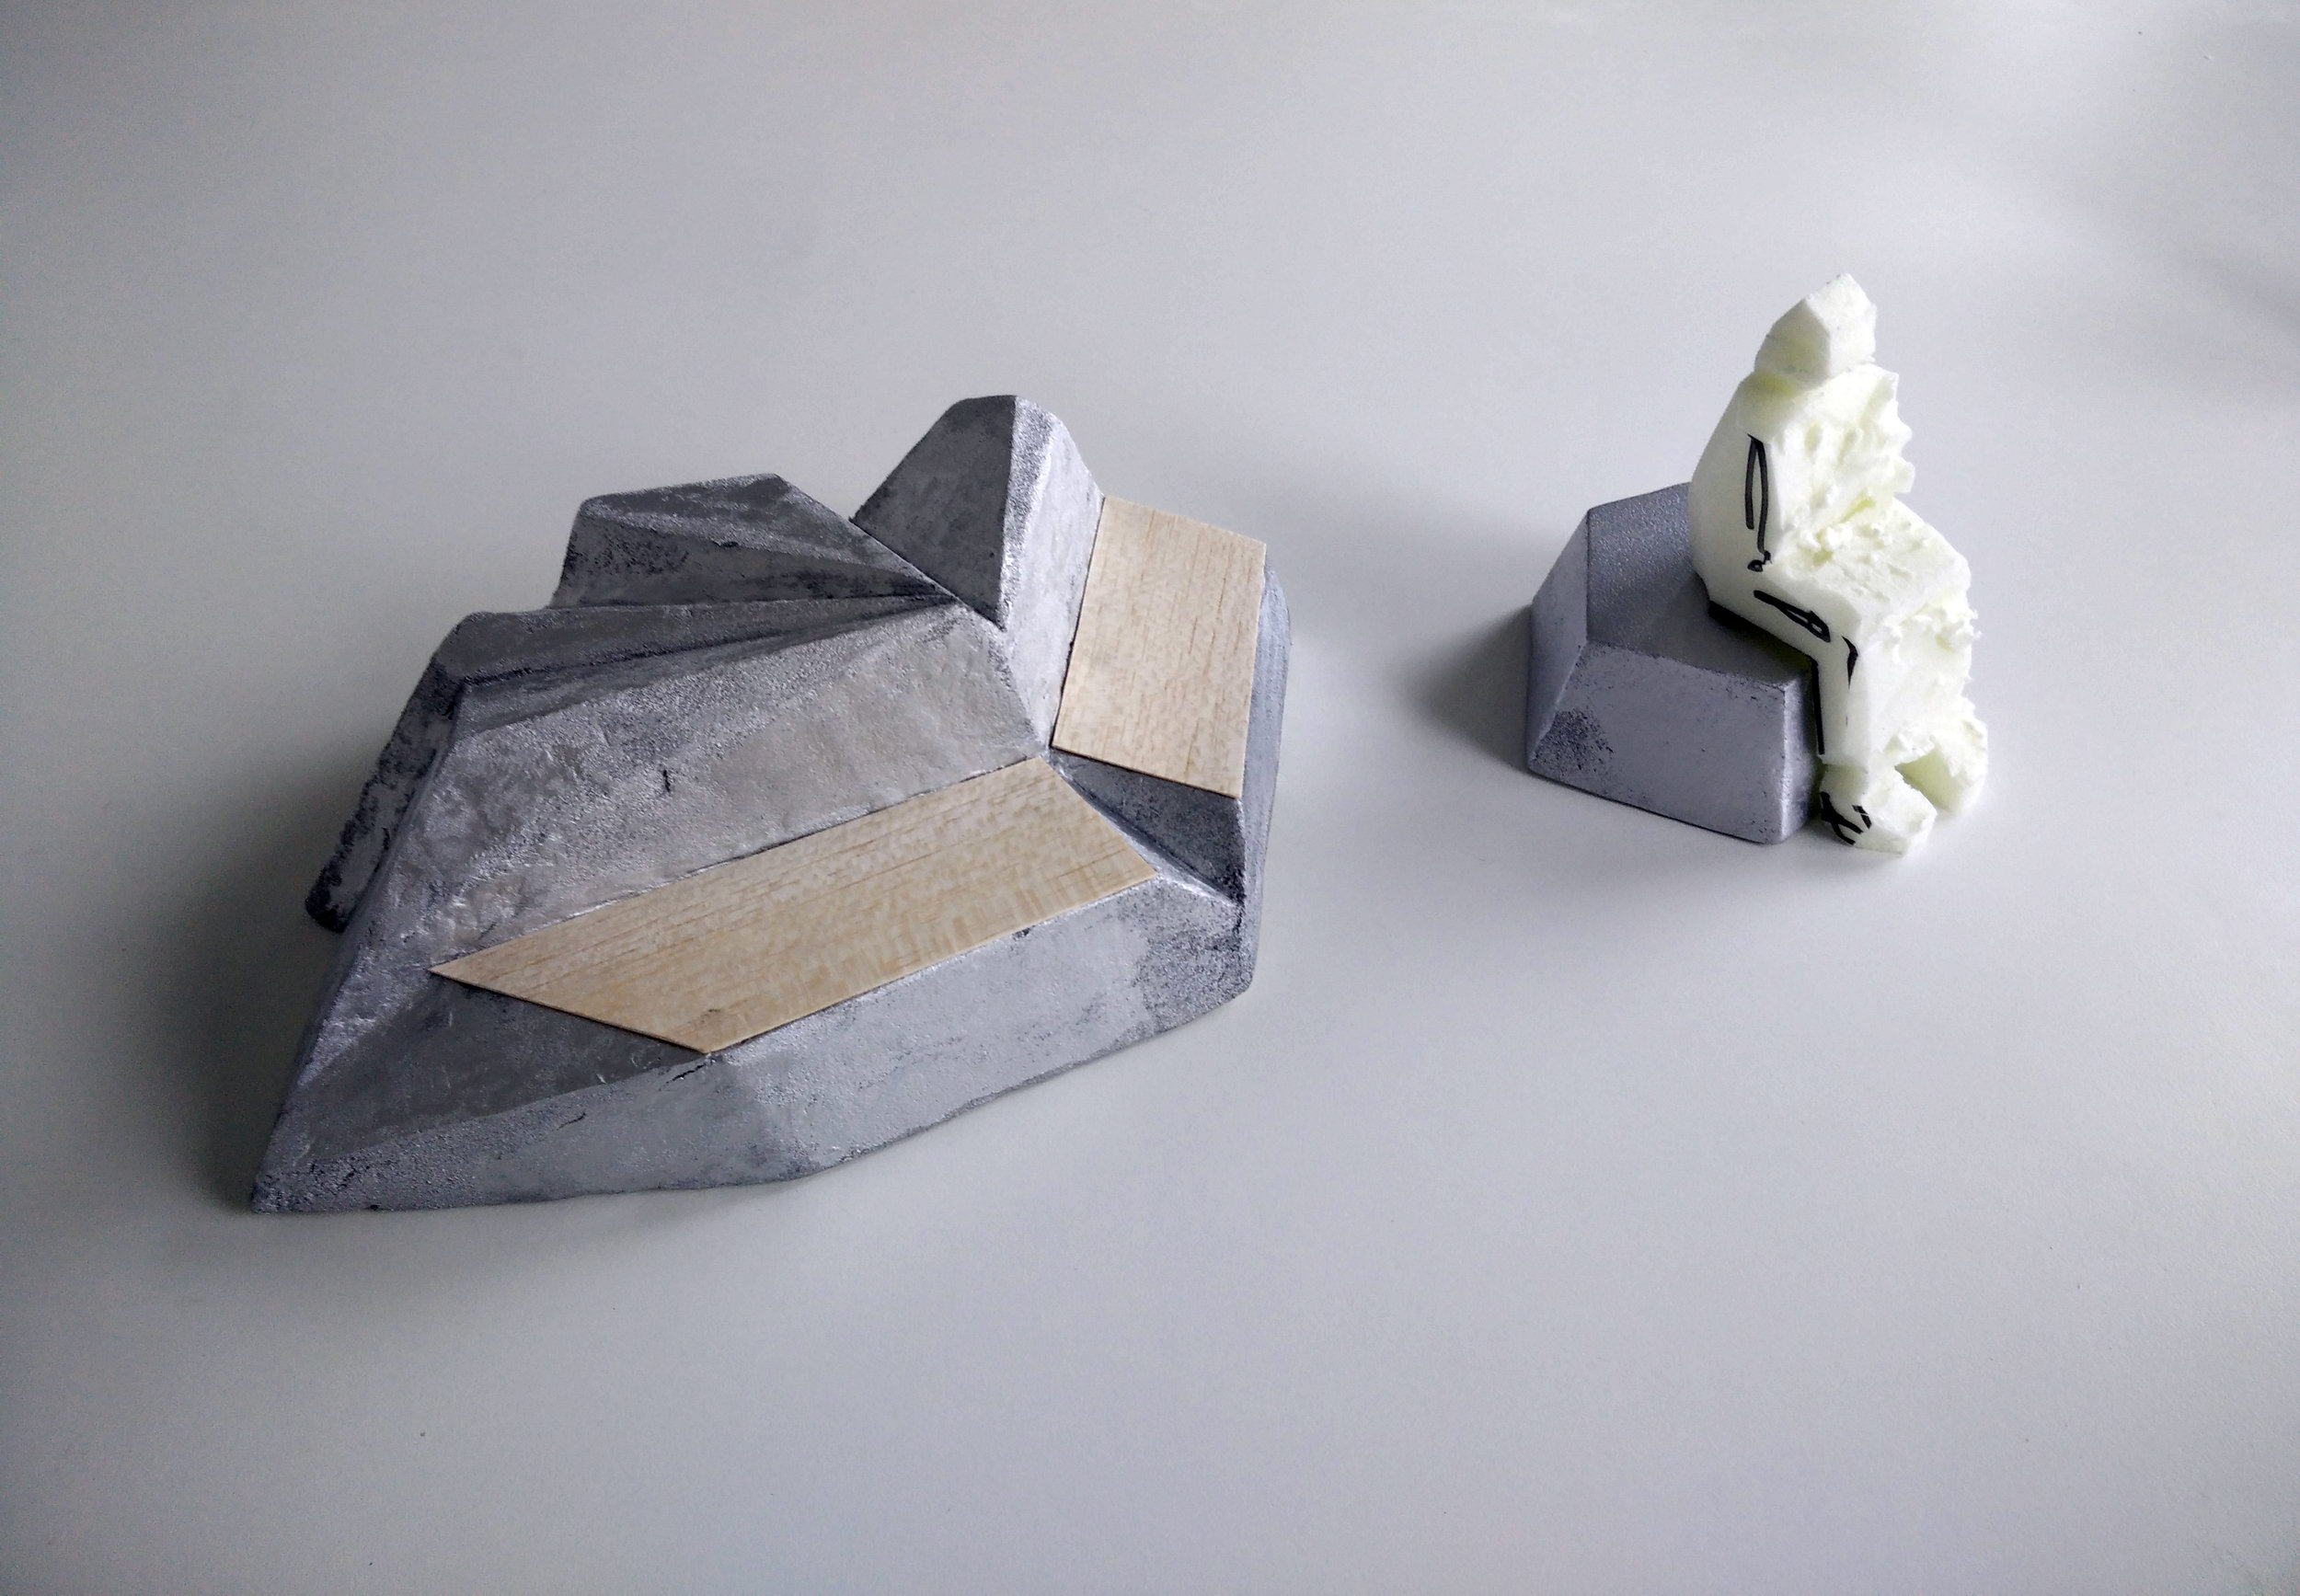 An early scale model of the work